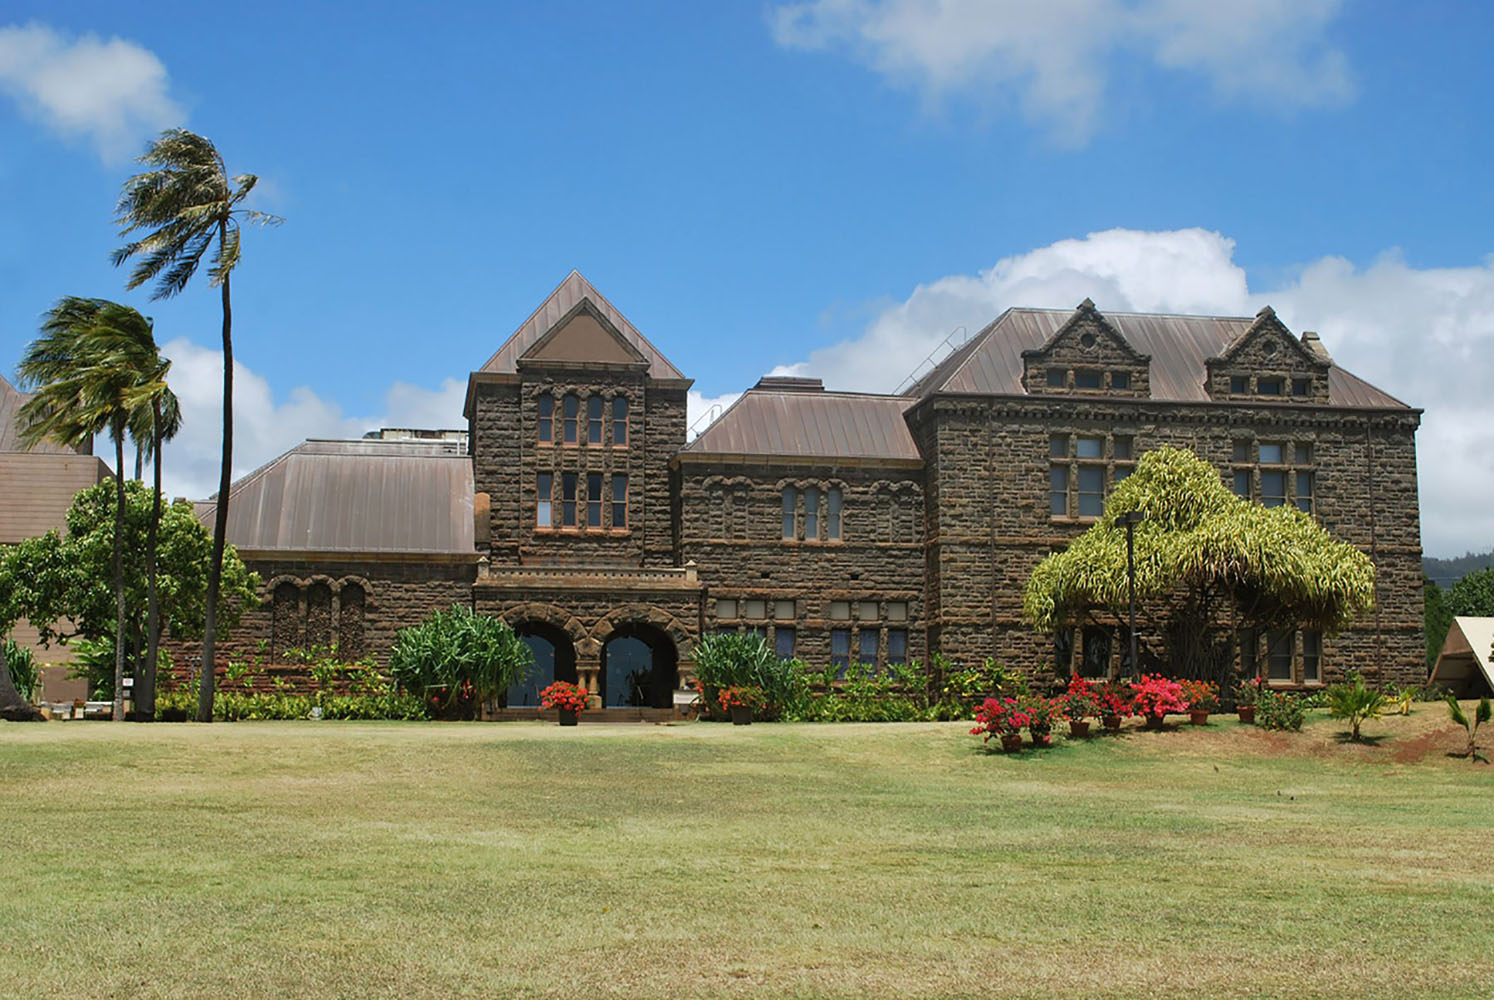 The main building of the Bishop Museum in Hawaii